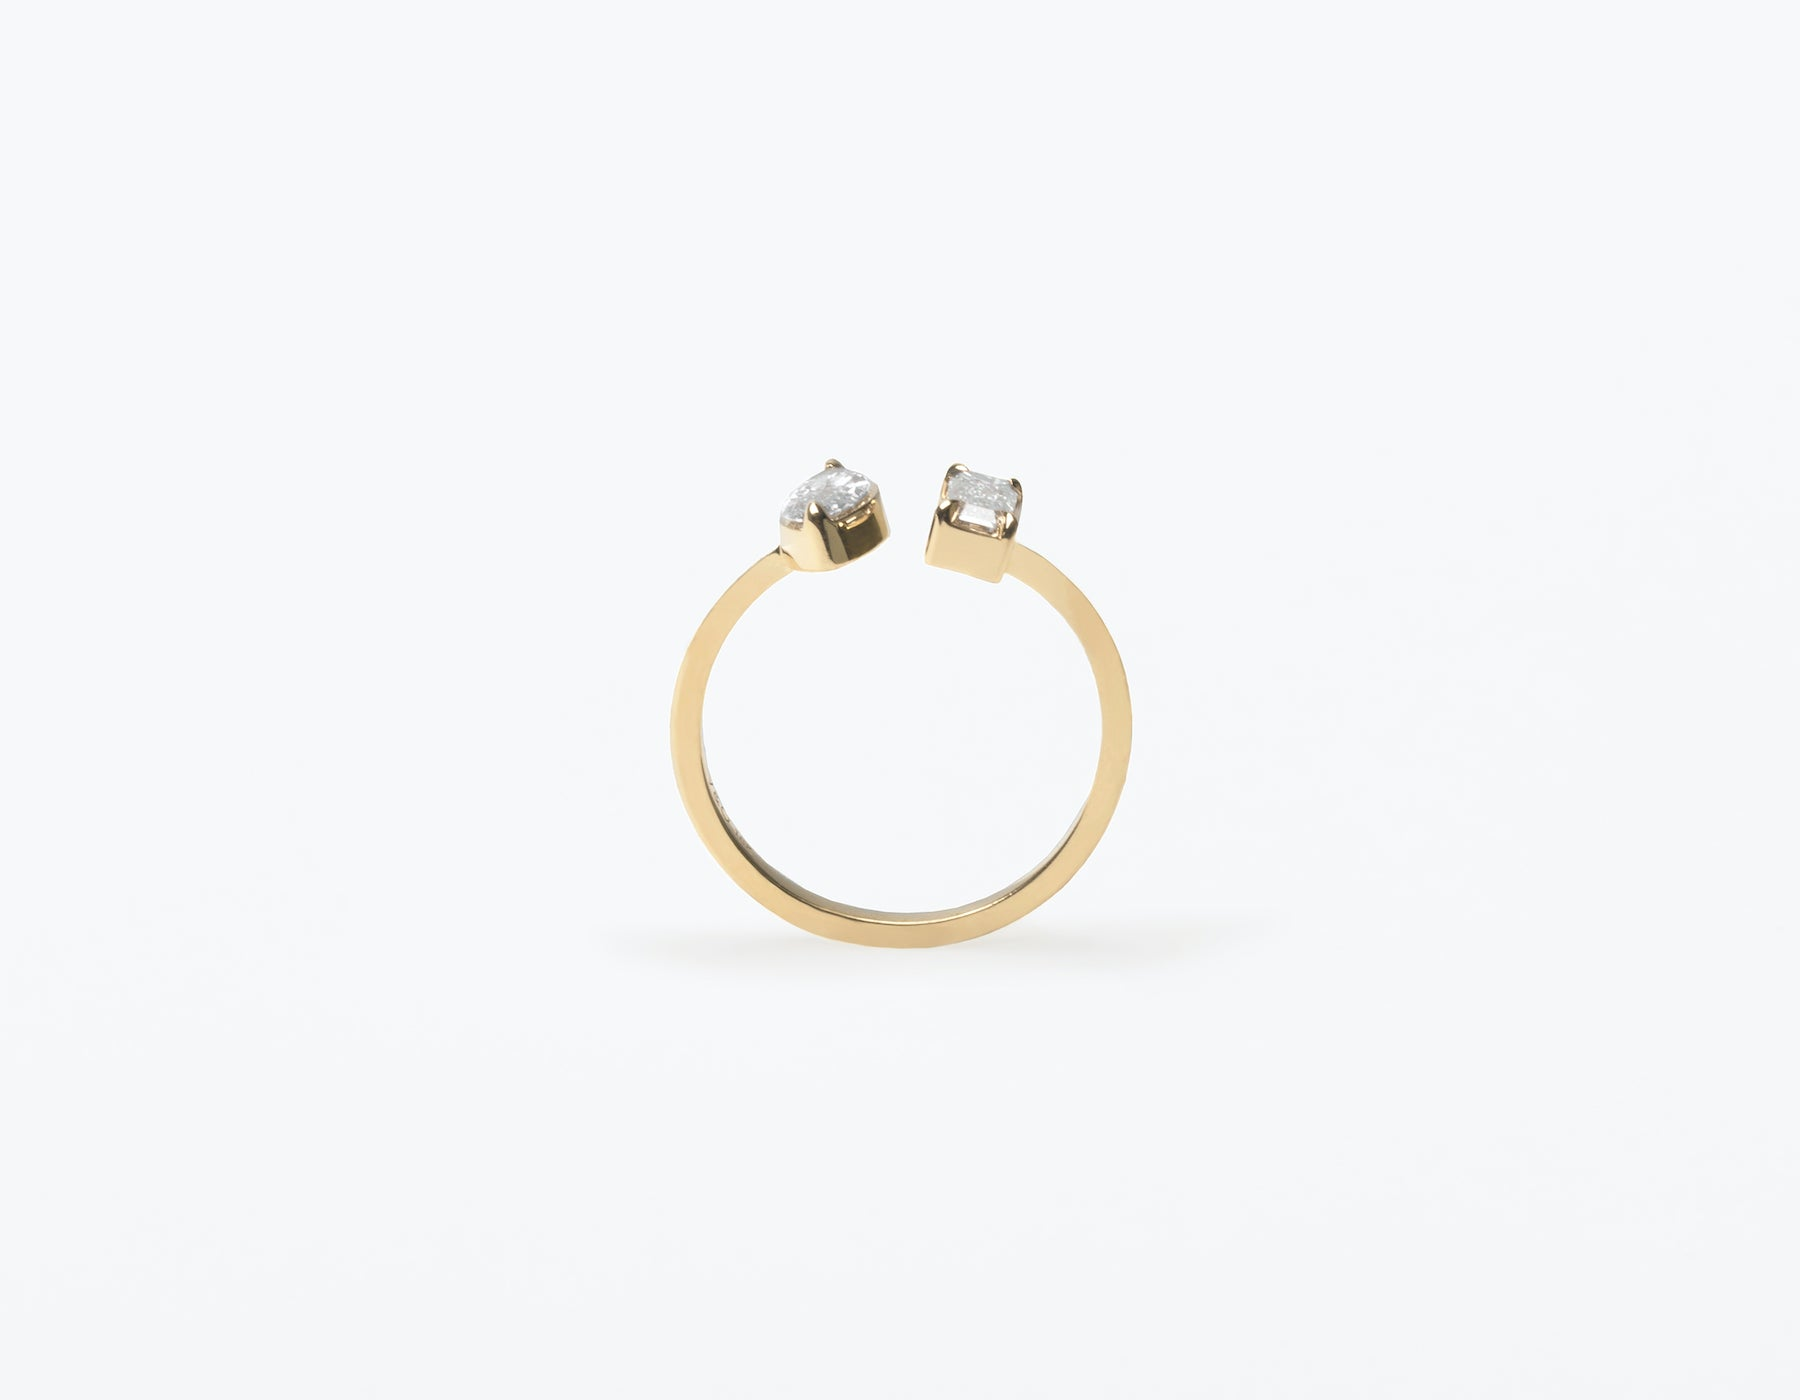 Modern Minimalist 18K solid gold Mix Baguette and Marquise Diamond Cuff Ring Vrai and Oro, 14K Yellow Gold